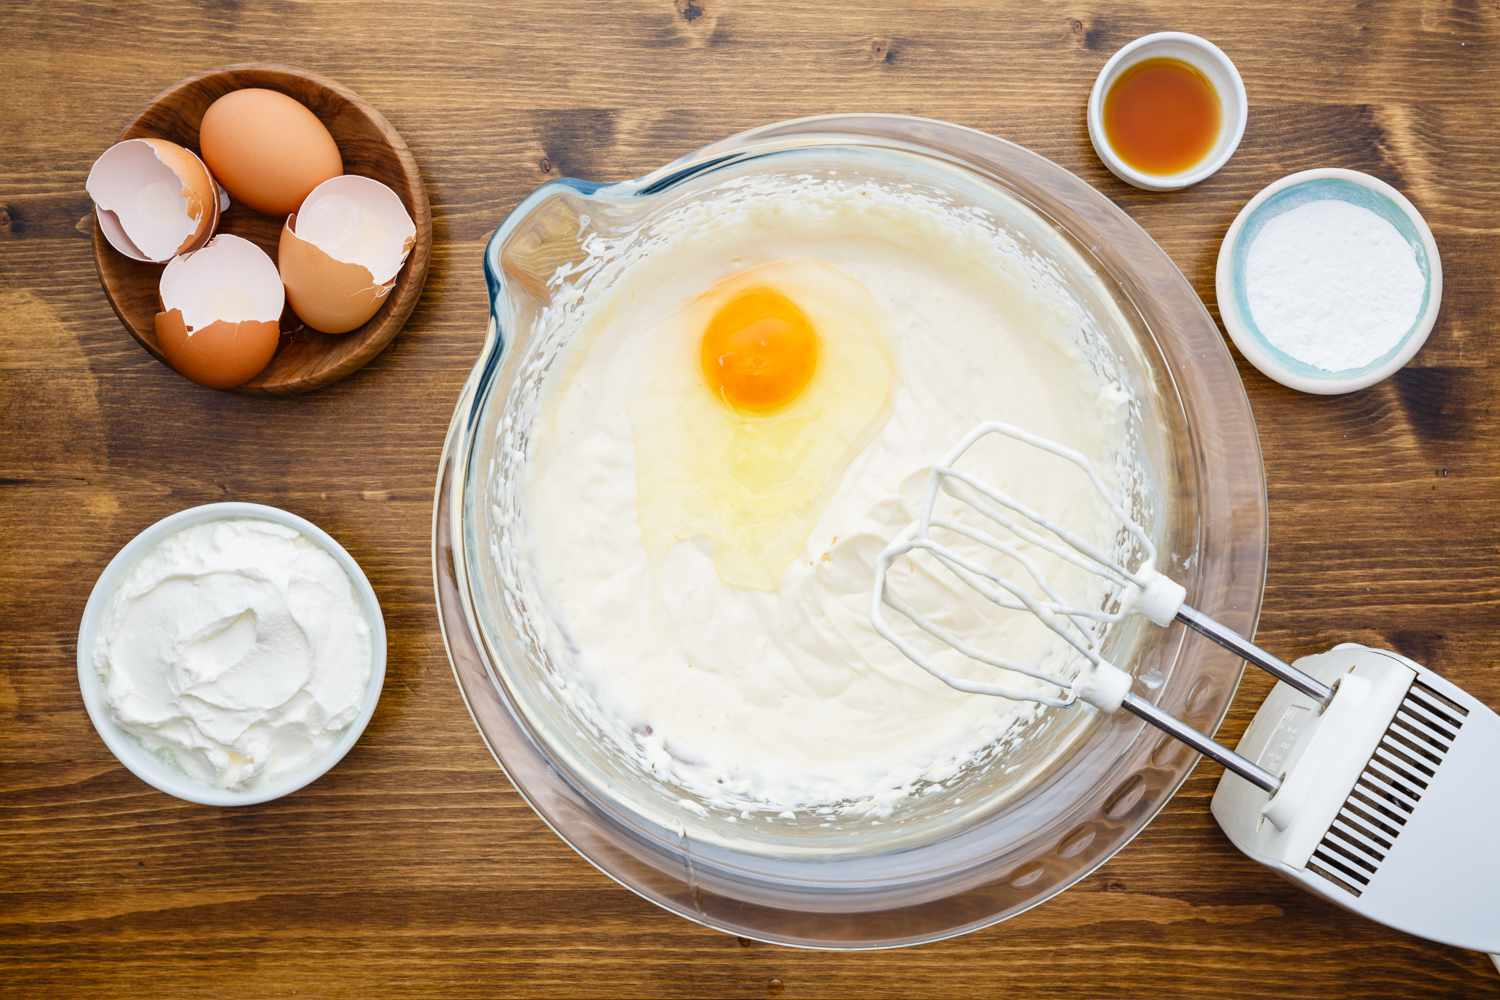 Add eggs to cheesecake batter